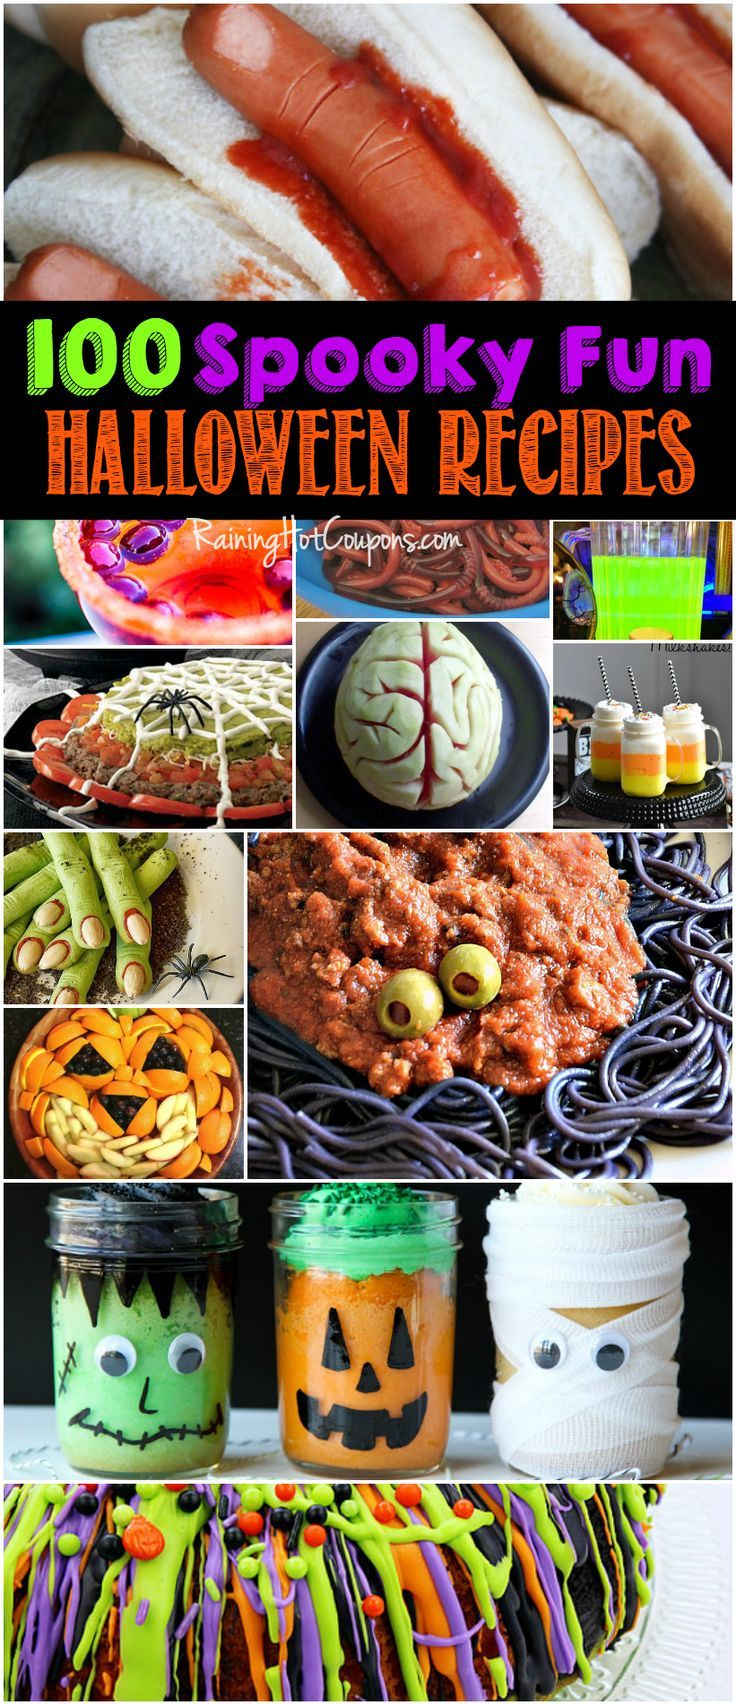 100 Halloween Recipes - Huge list of spooky, fun and unique Halloween recipes. Everything from Edible eyes and fingers to spider dip and candy corn milkshakes!